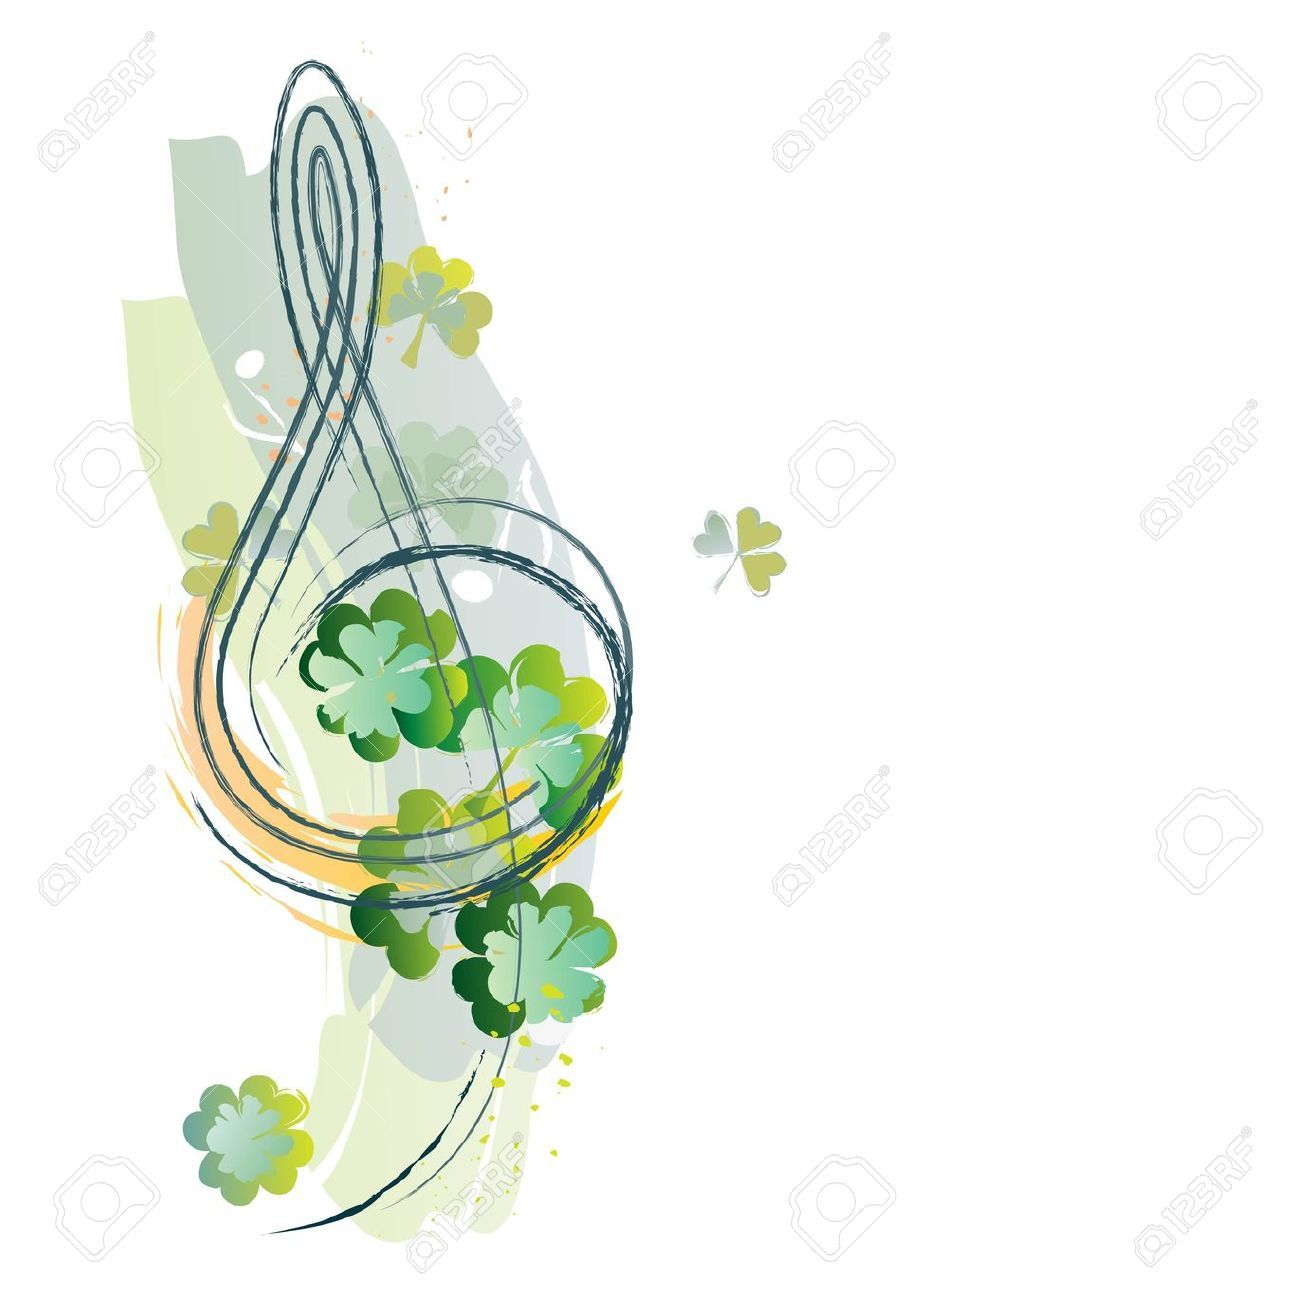 Celtic Music Stock Vector Illustration And Royalty Free